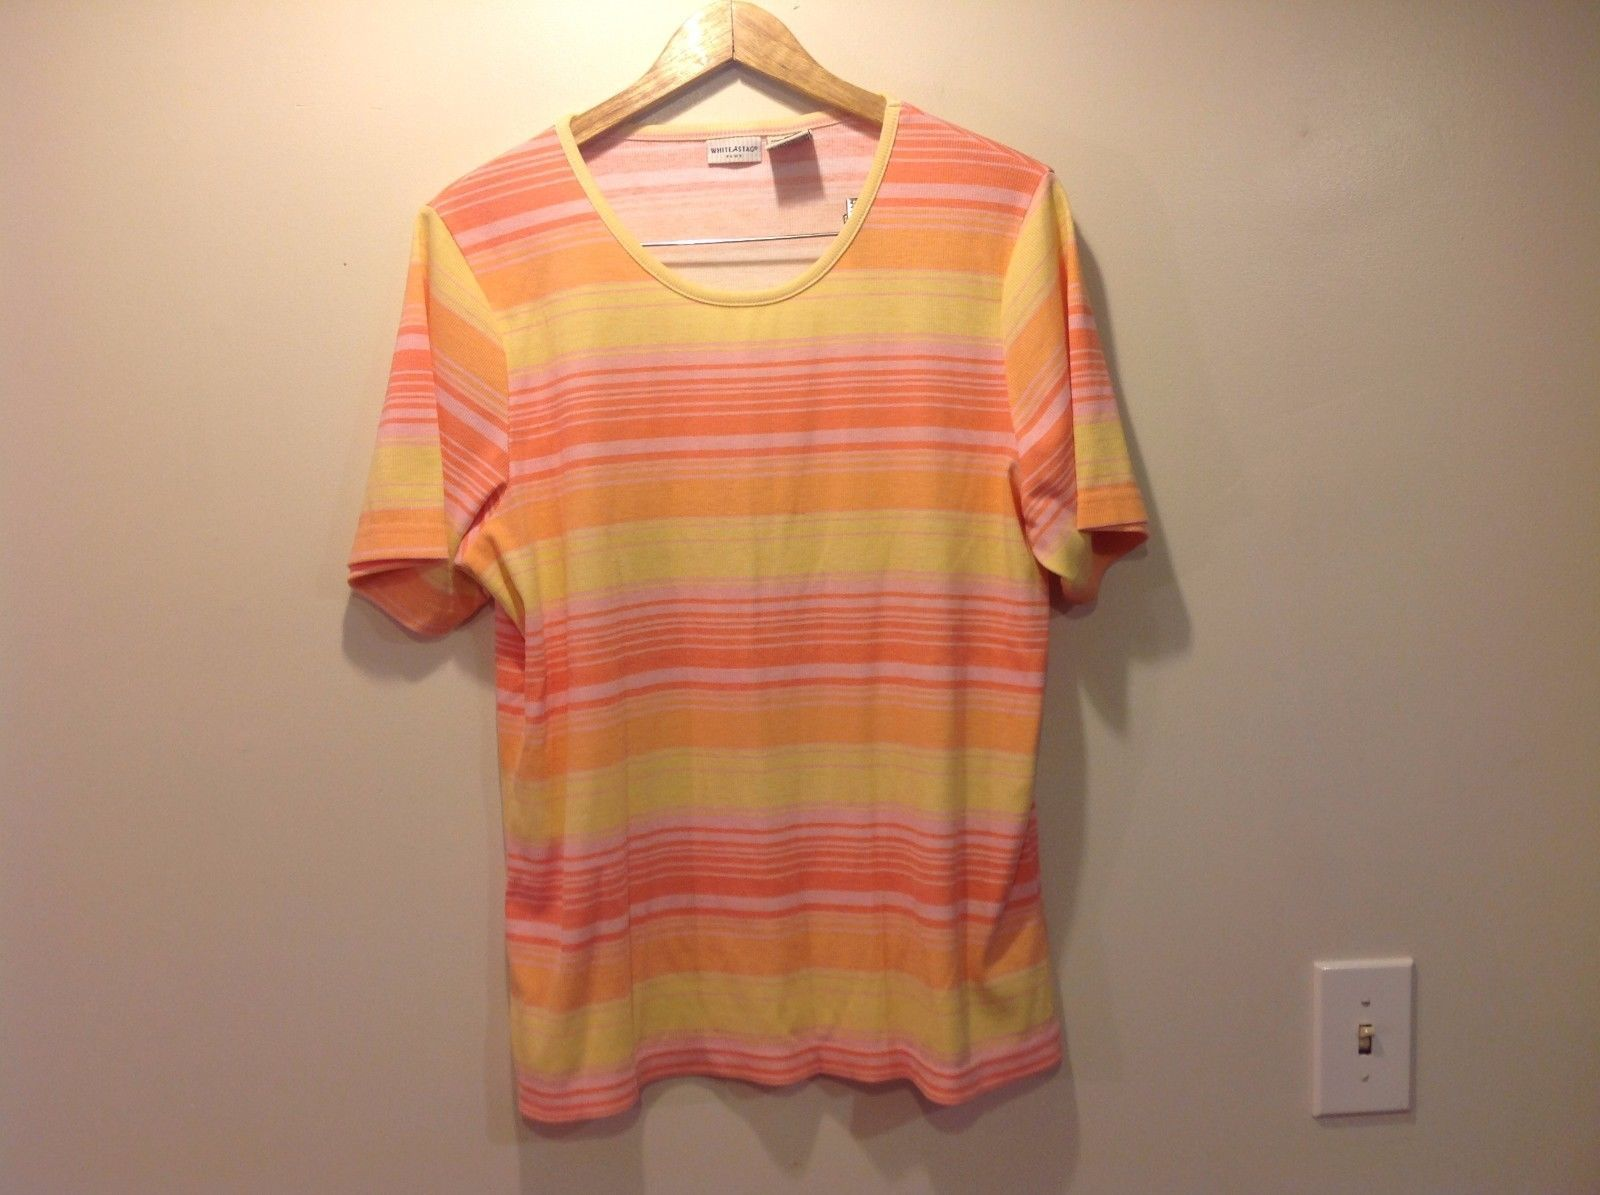 White Stag Plus Women's Shirt Size 18W Pink Yellow Striped